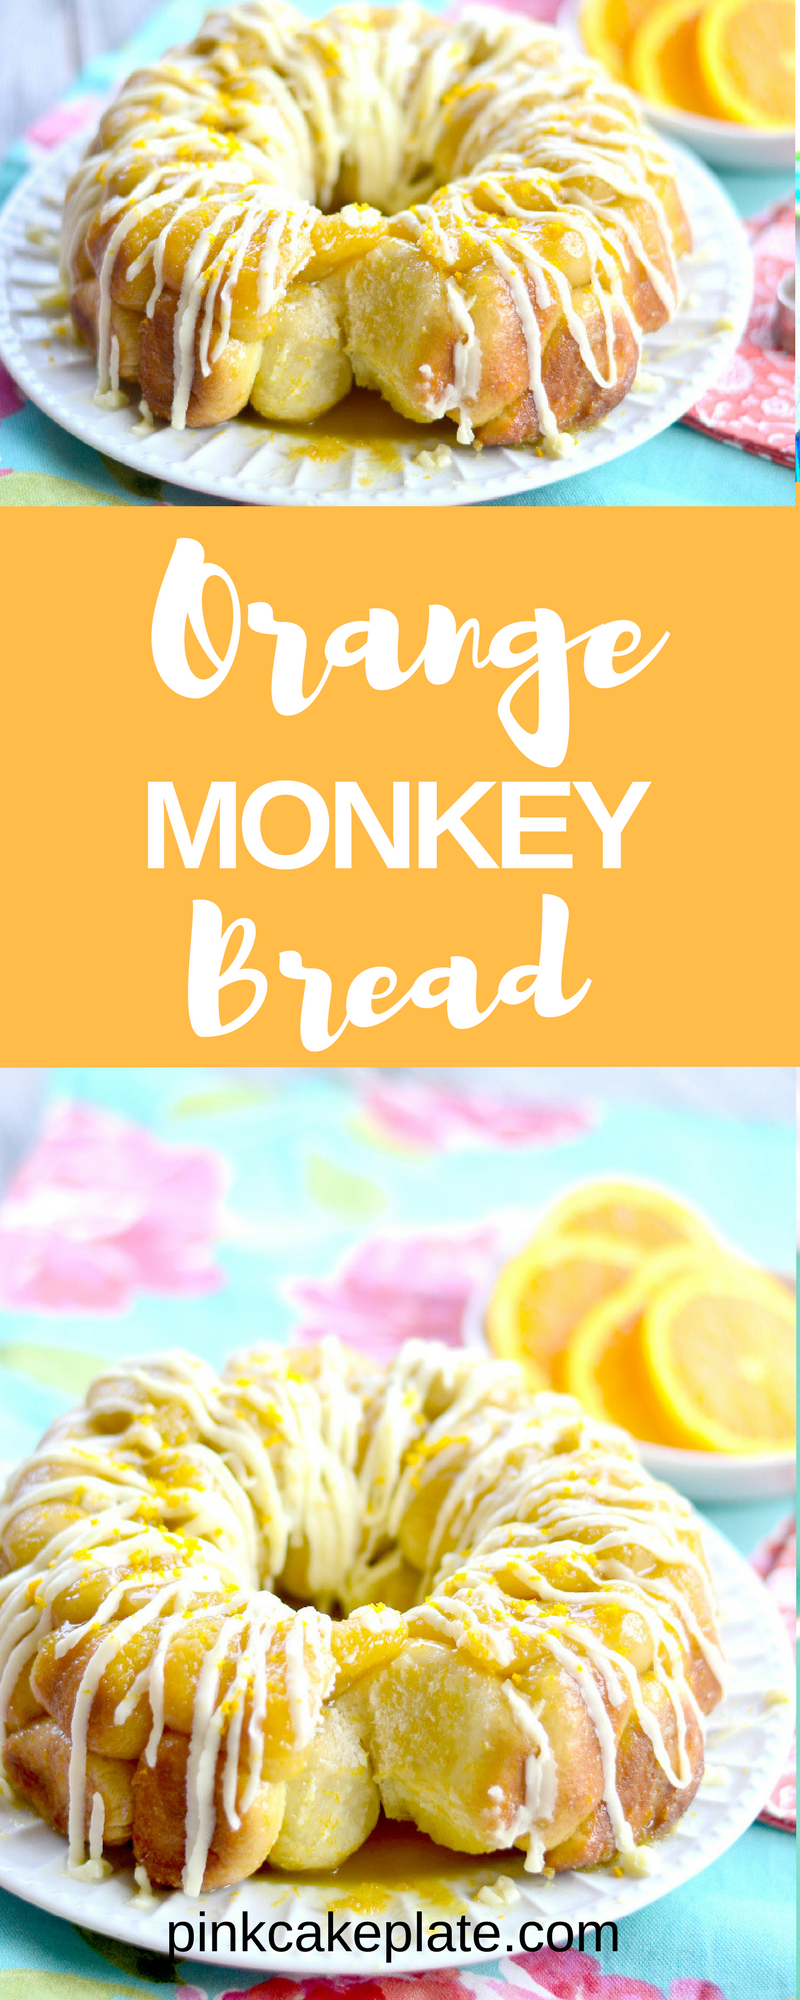 Orange Monkey Bread - Pink Cake Plate